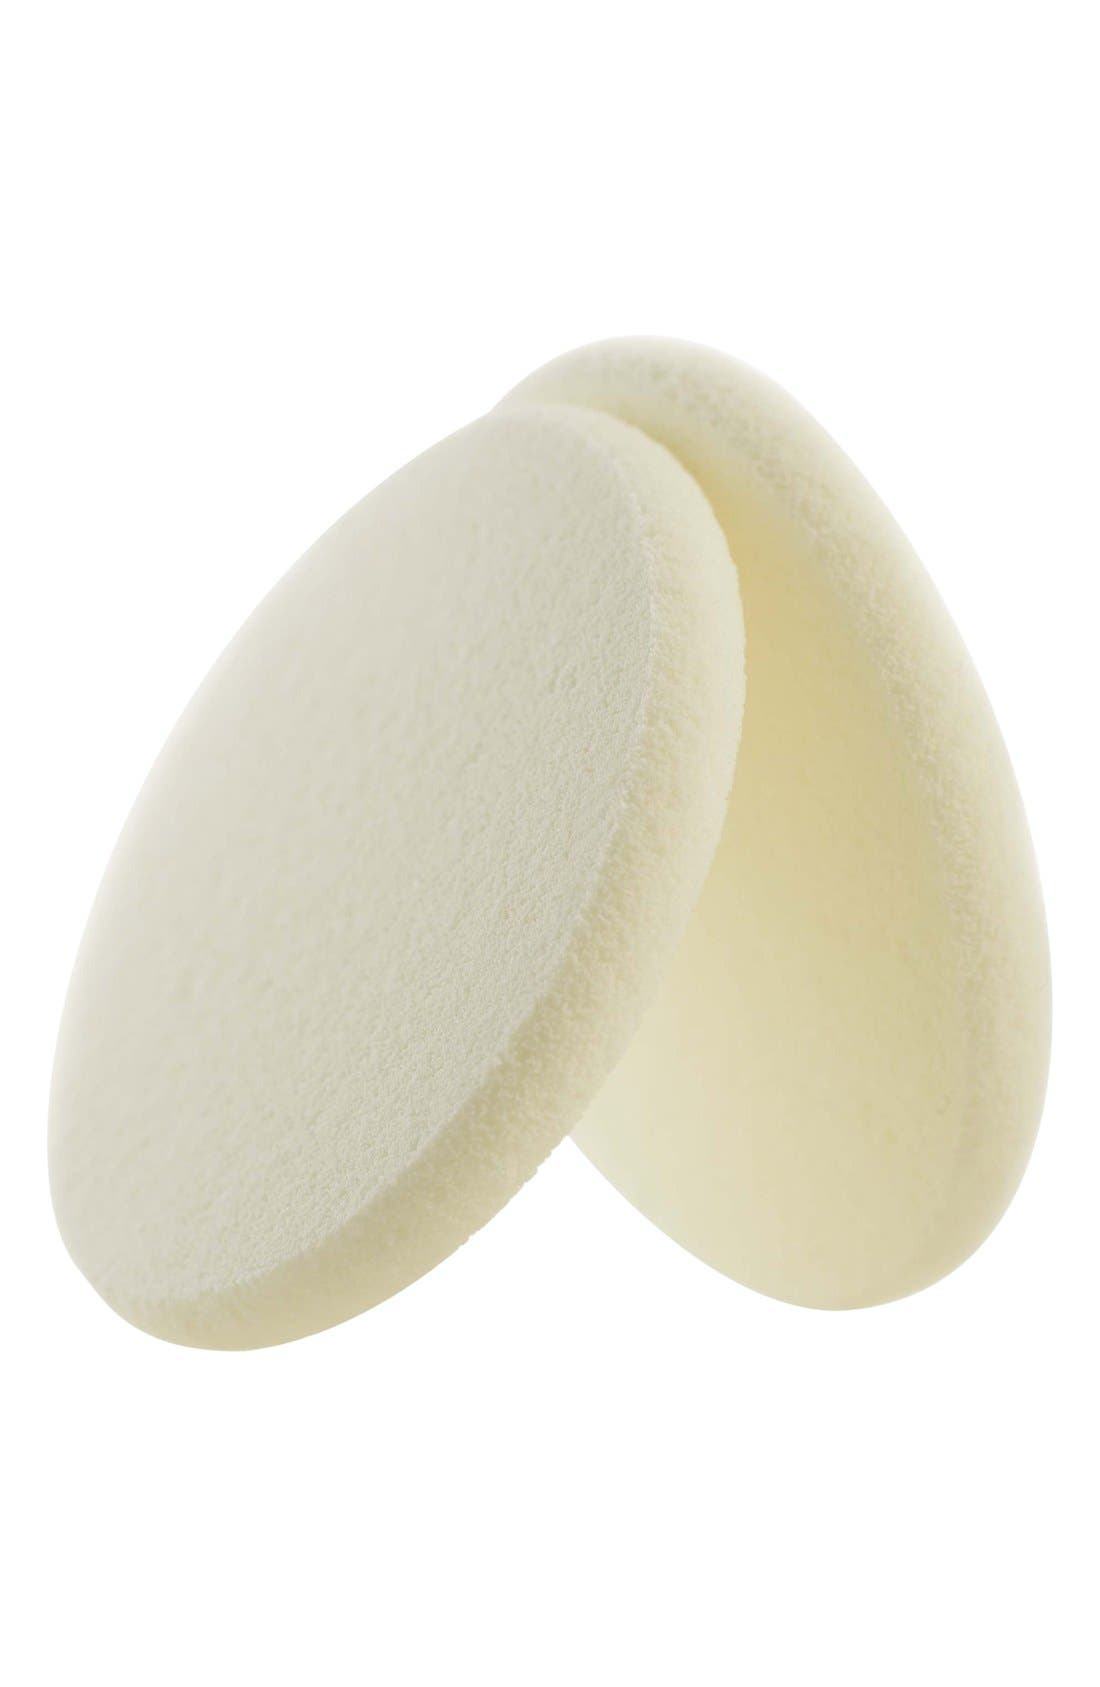 Foundation Powder Sponge,                             Main thumbnail 1, color,                             000